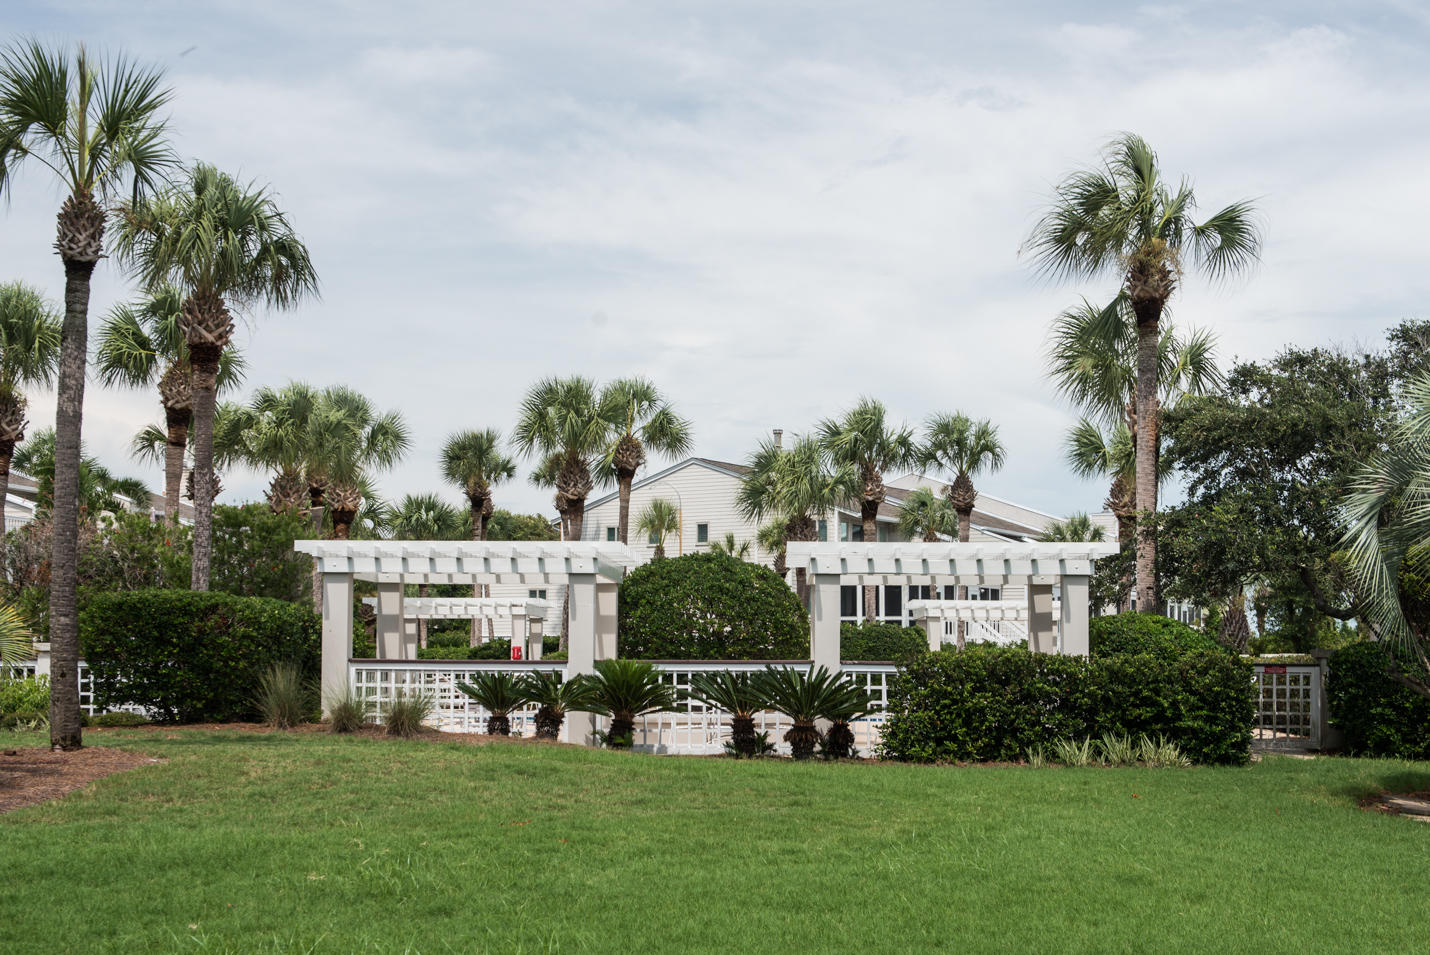 Beach Club Villas Homes For Sale - 66 Beach Club Villas, Isle of Palms, SC - 36